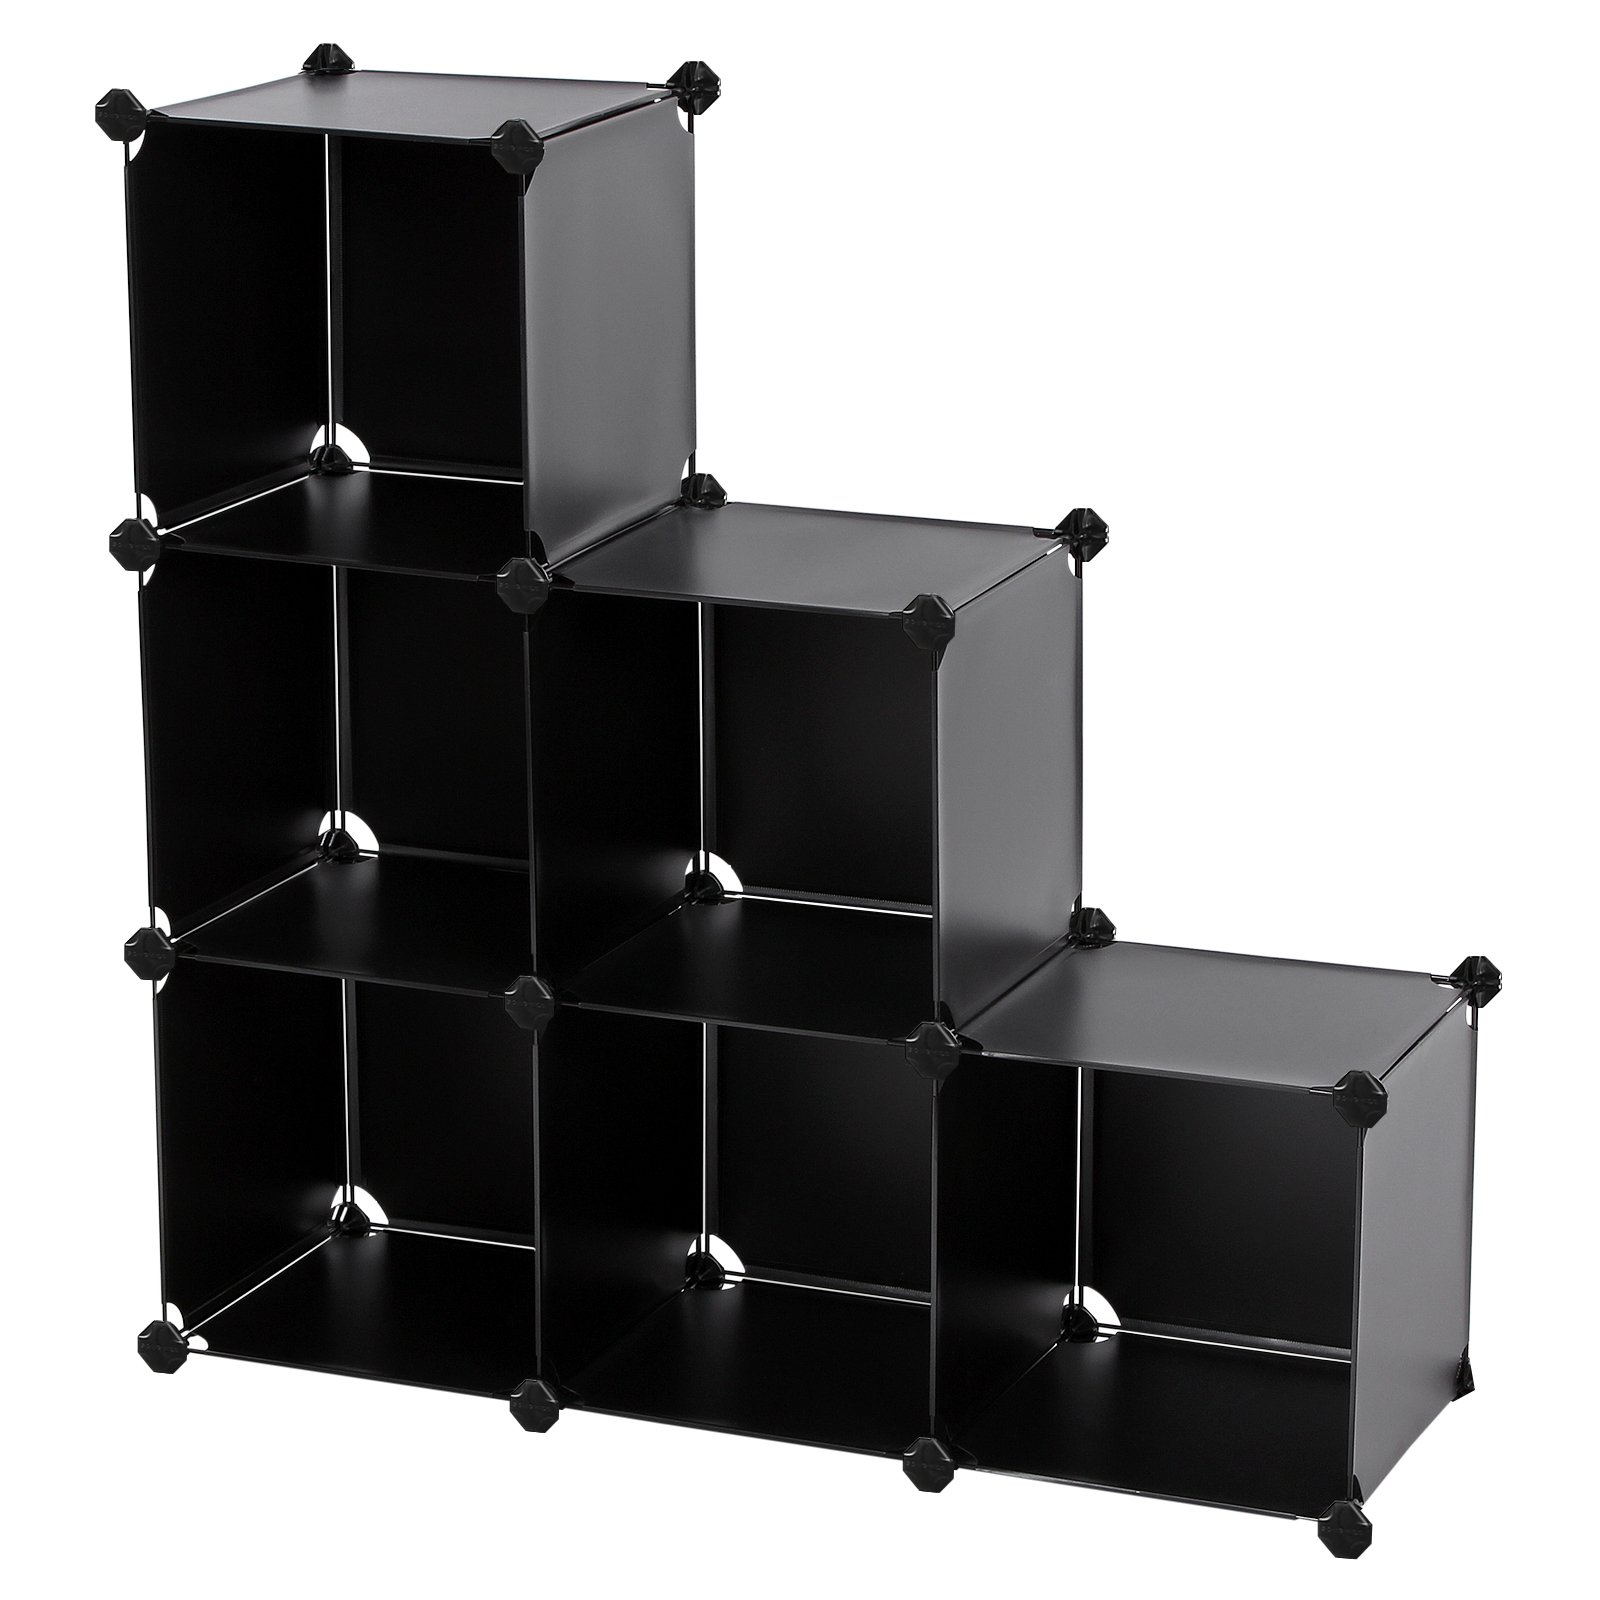 Songmics Storage Cube Organizer Diy Plastic Closet Shelf With Rubber Hammer 6 Bookcase Cabinet